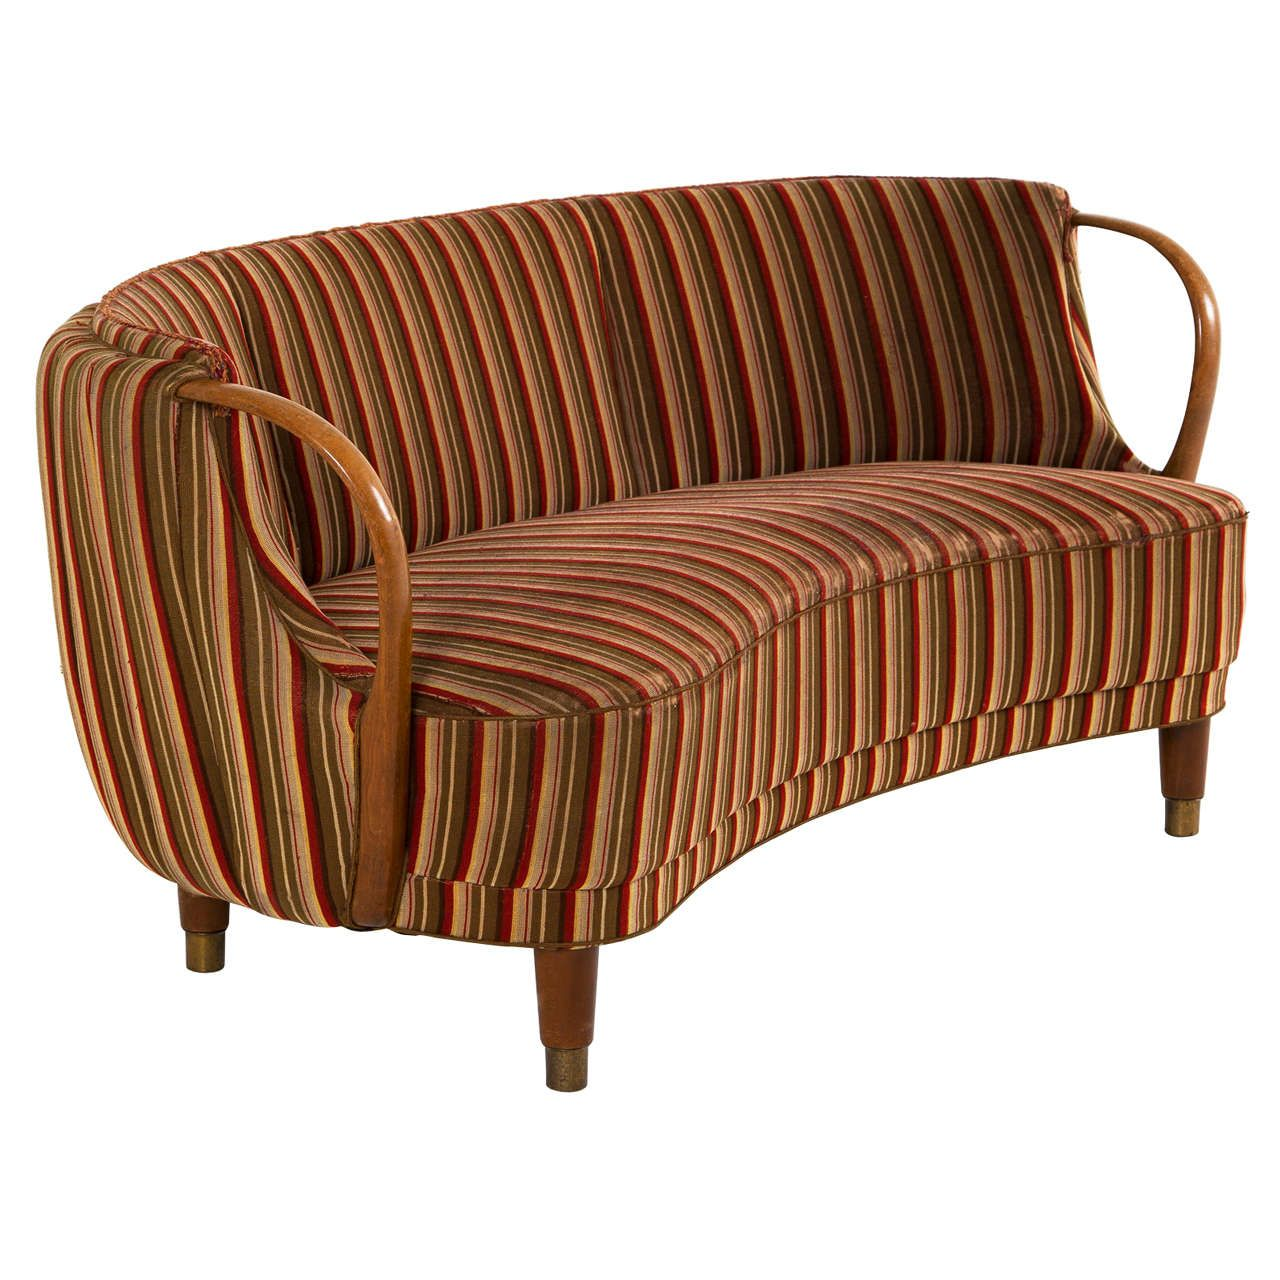 Unique Loveseats Danish Curved Loveseat From A Unique Collection Of Antique And